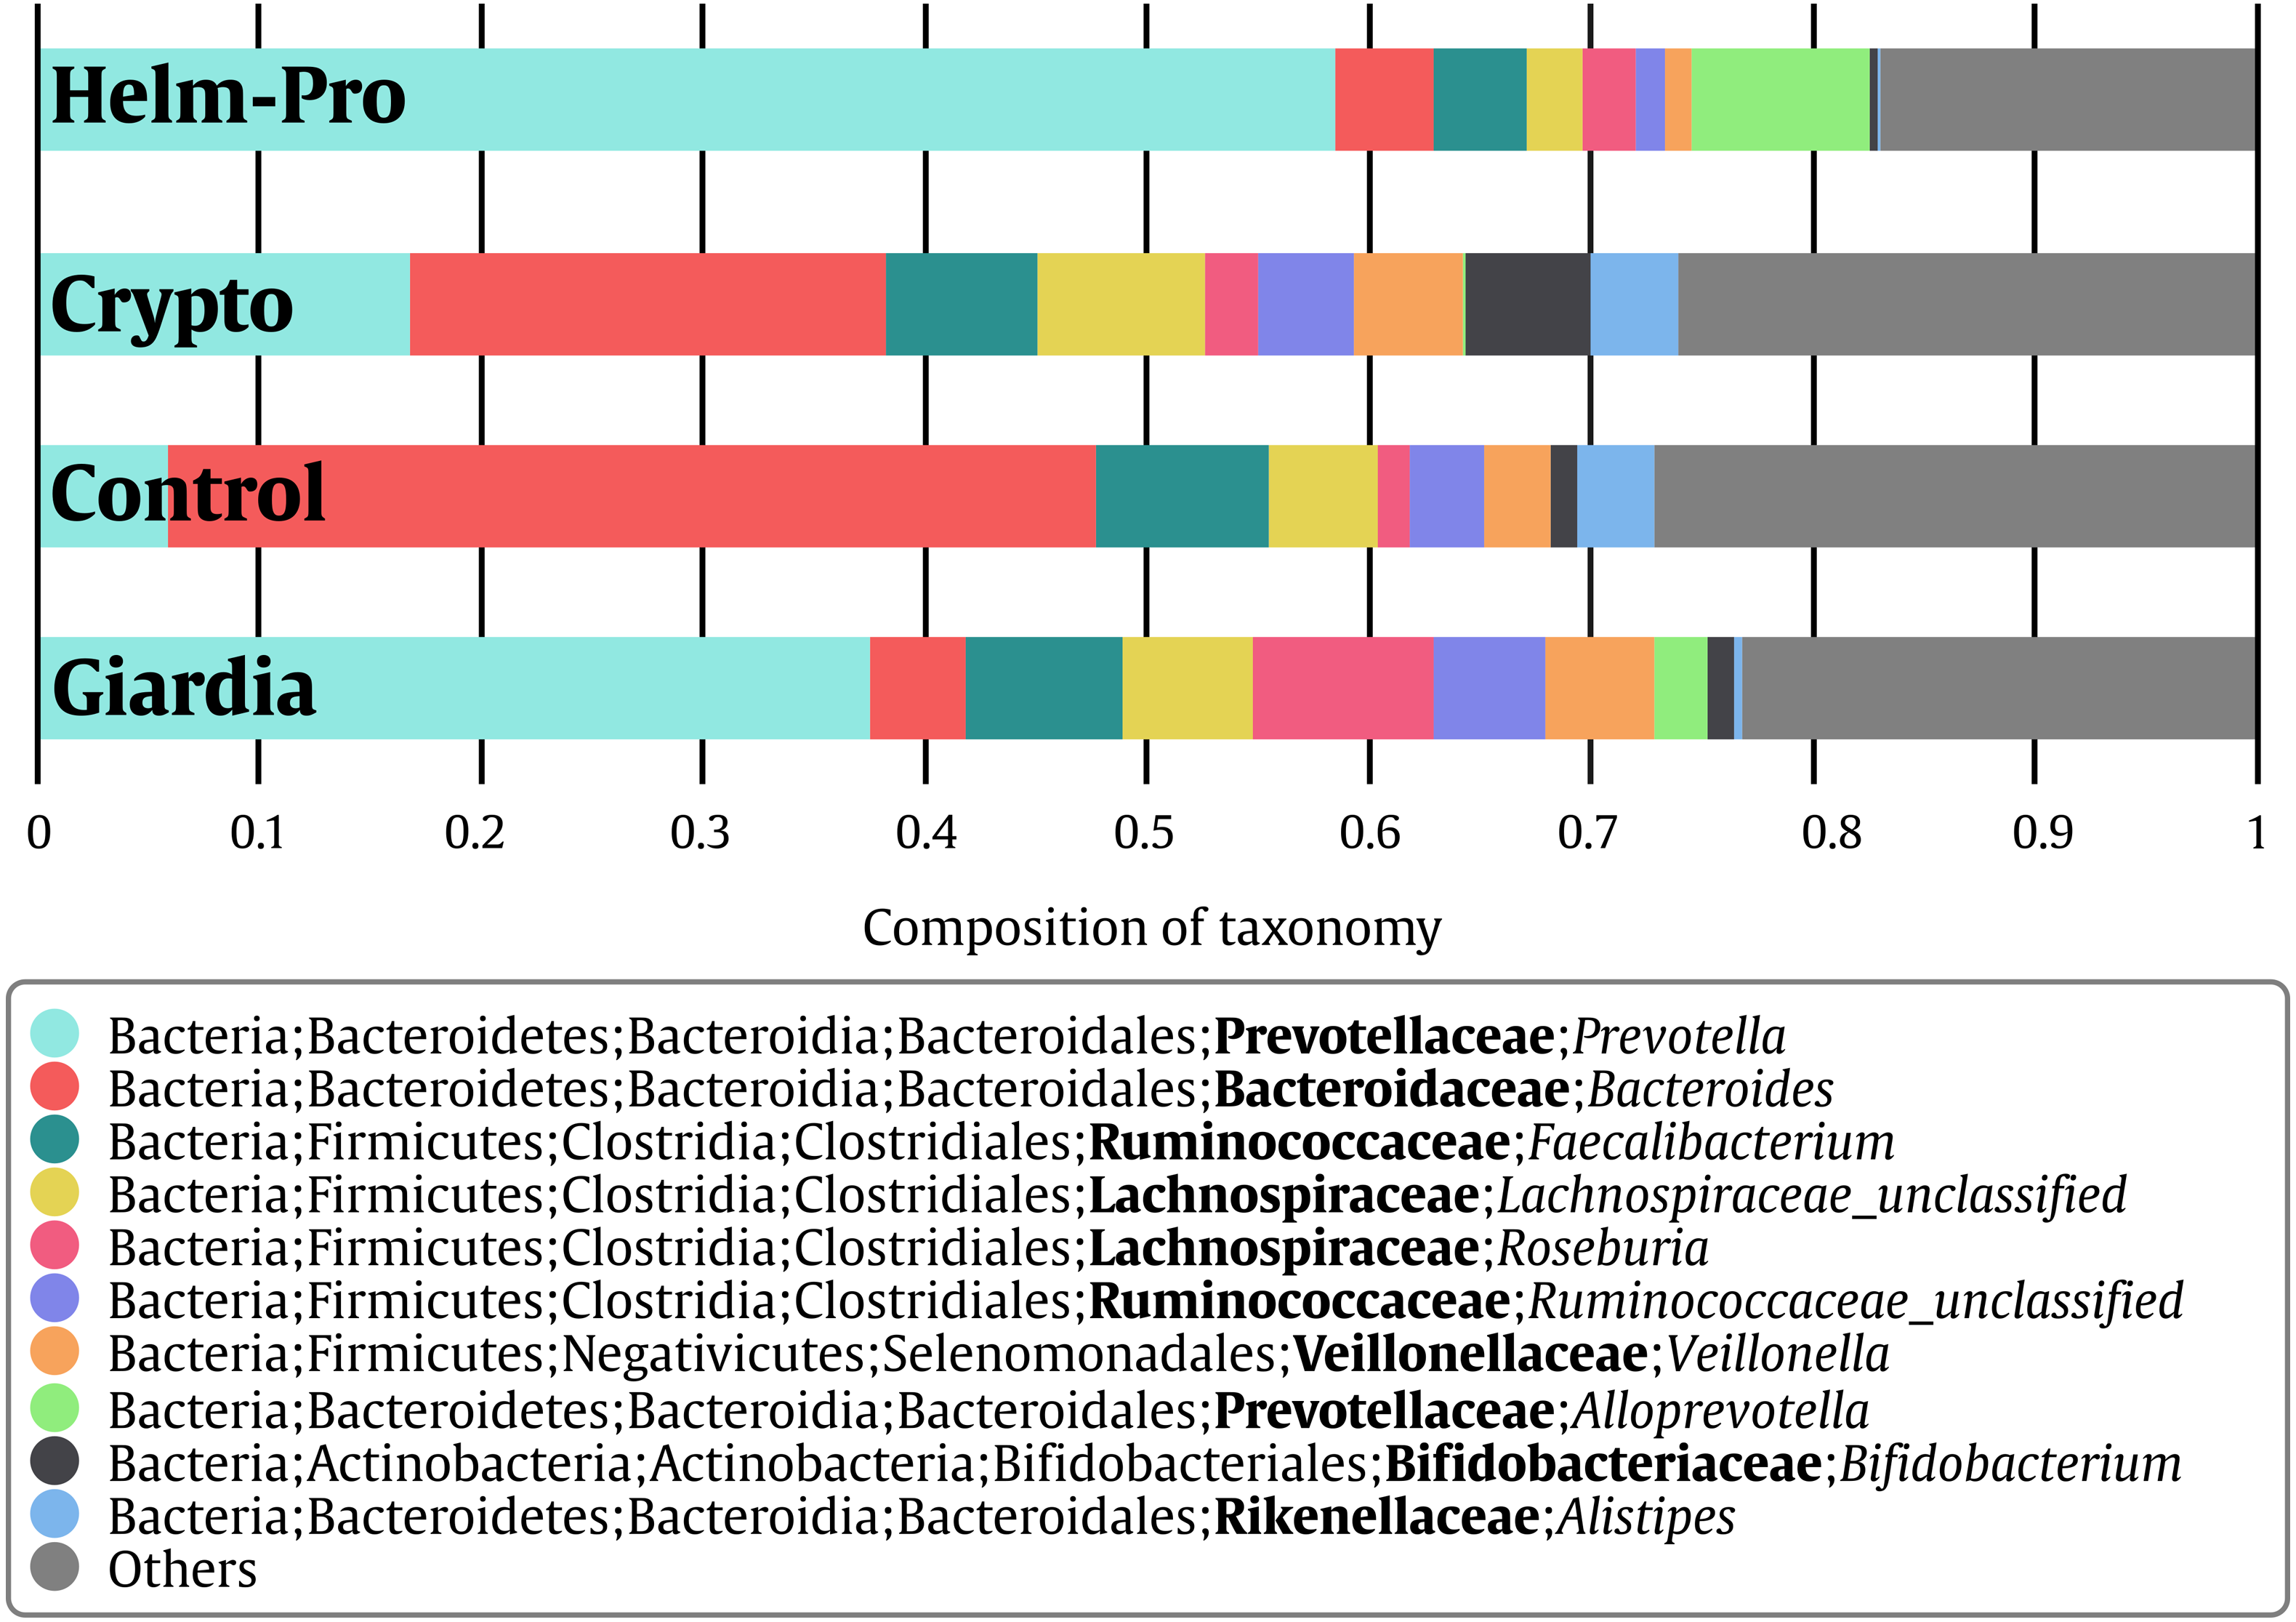 Intestinal Parasitic Infection Alters Bacterial Gut Microbiota In Children Peerj